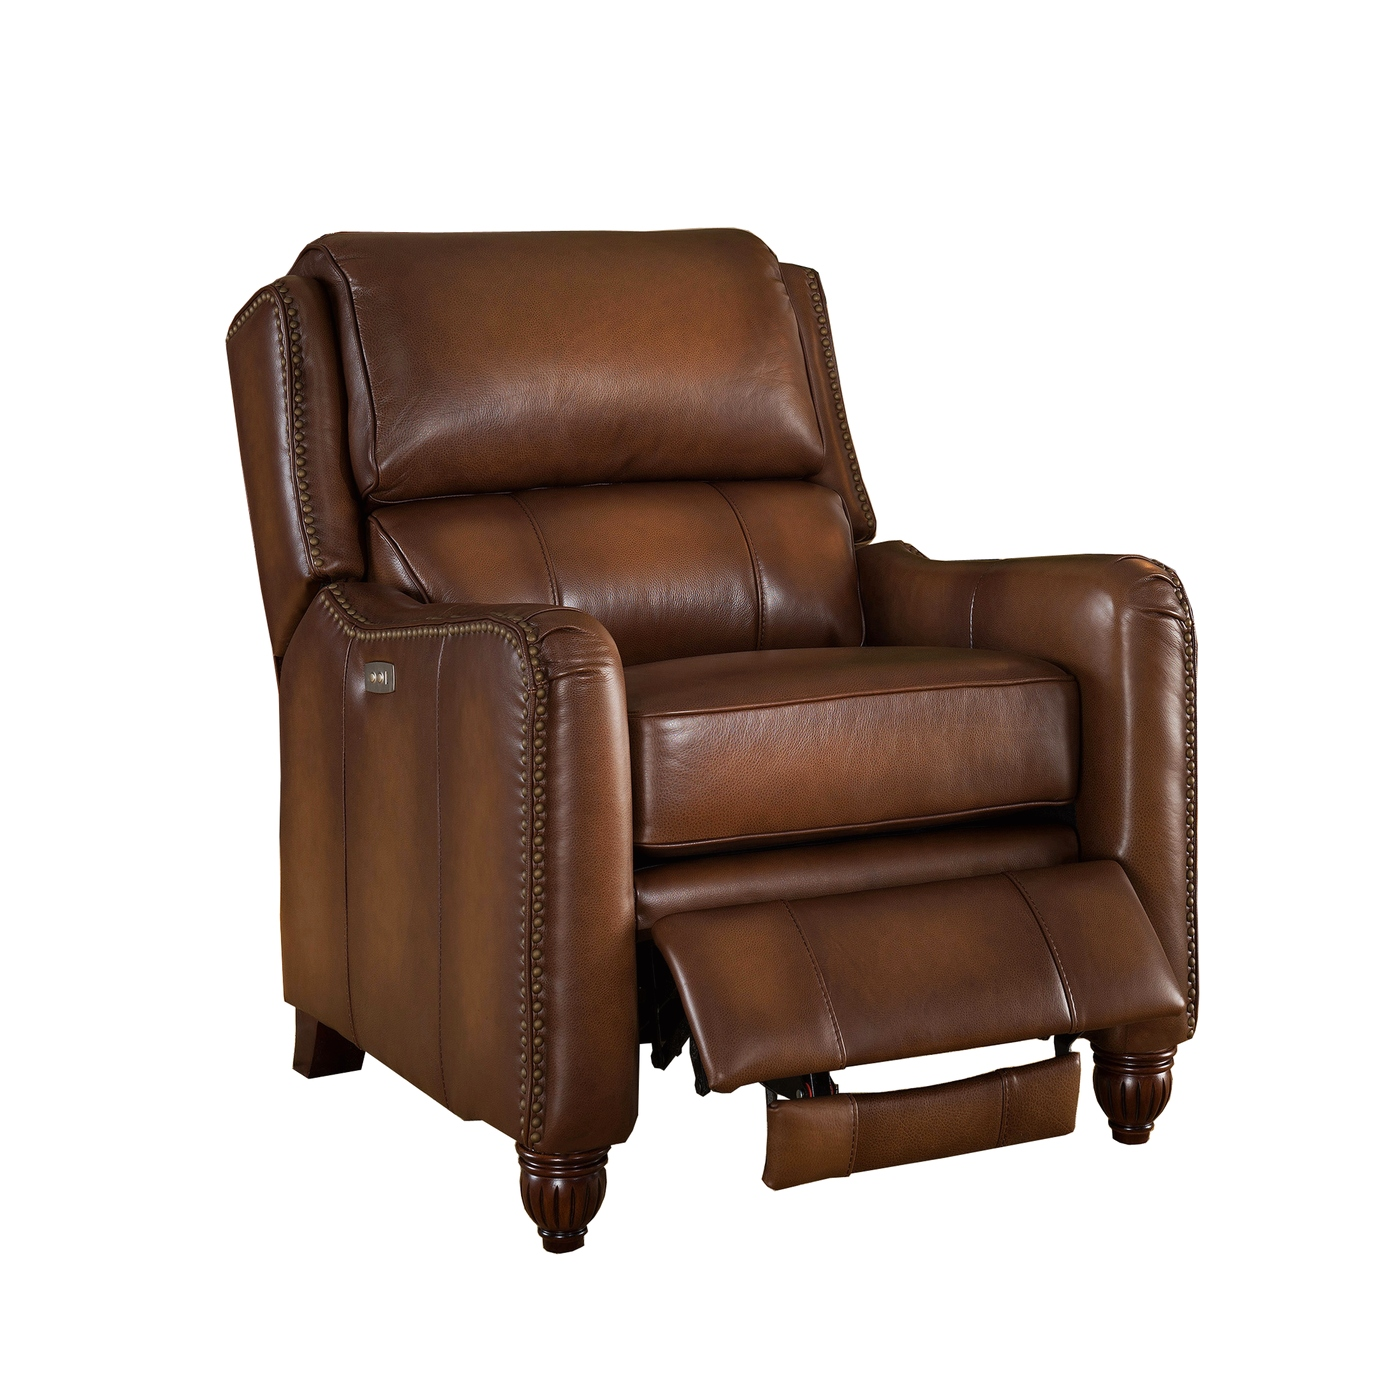 Best Leather Chairs Concord Traditional Top Grain Brown Leather Powered